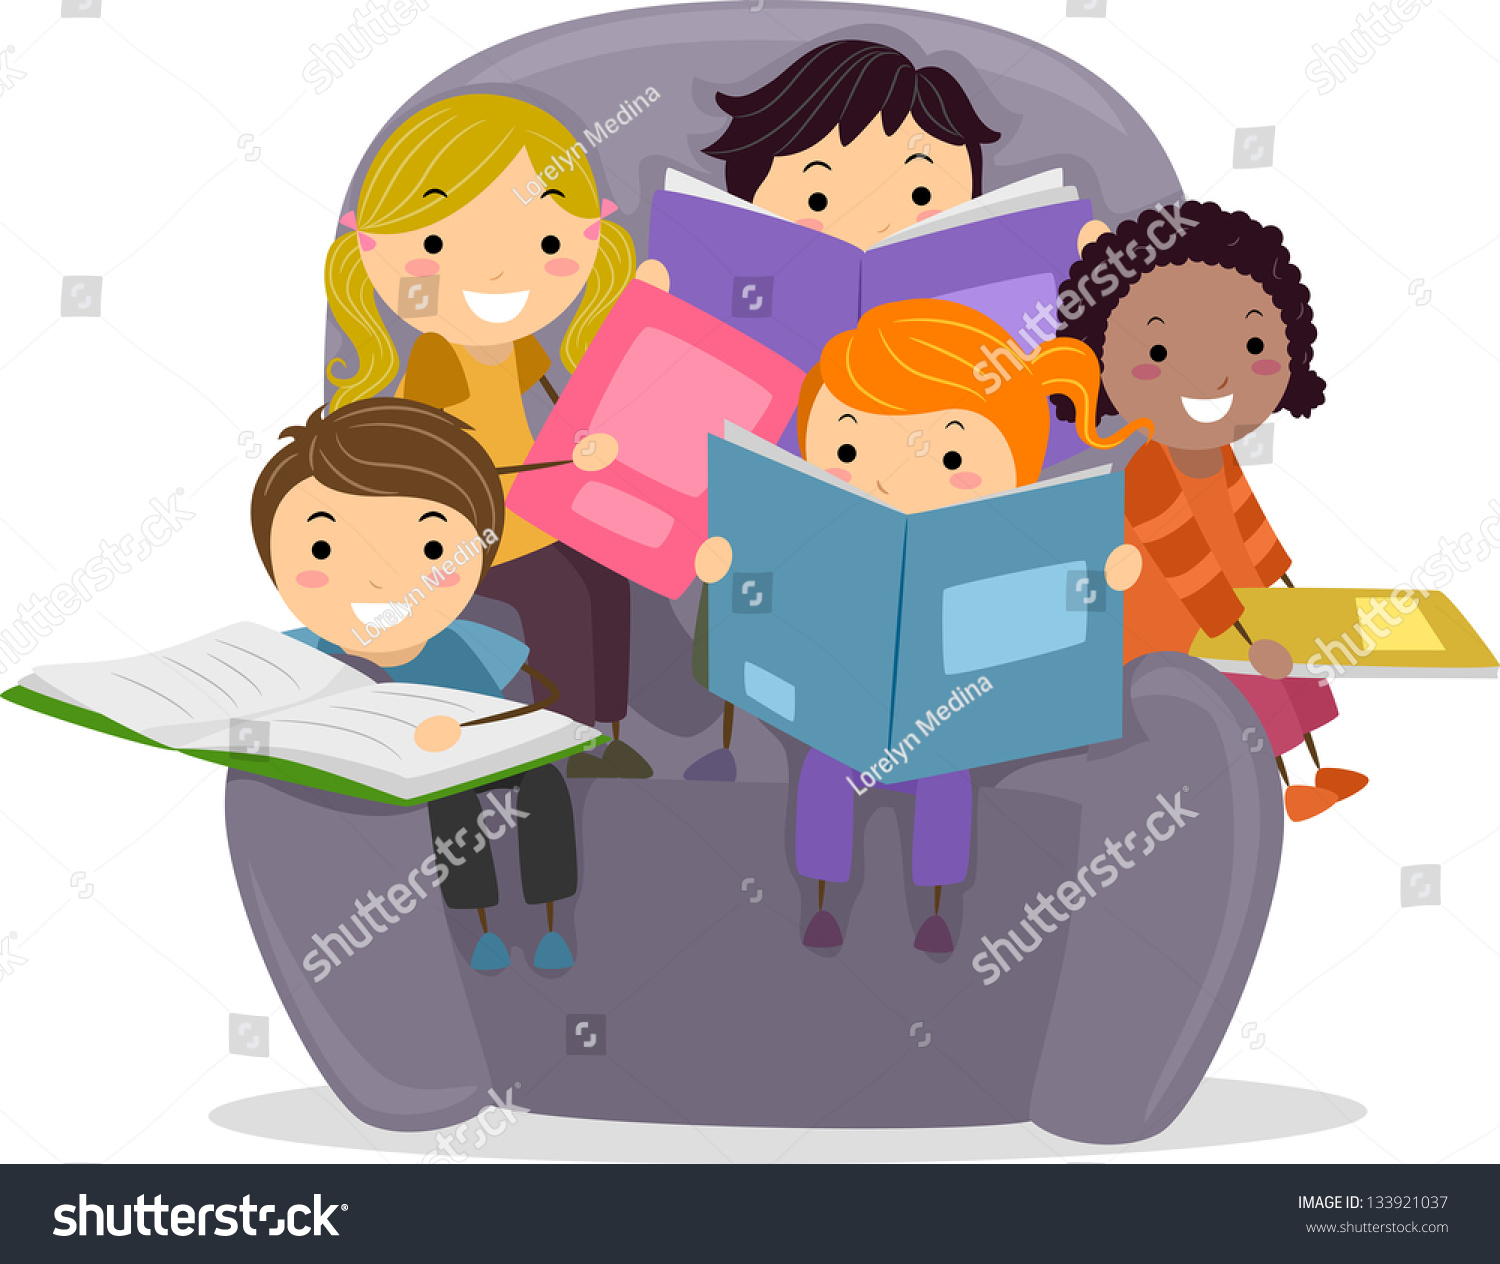 kids reading chair director covers world market illustration little sitting on big stock vector